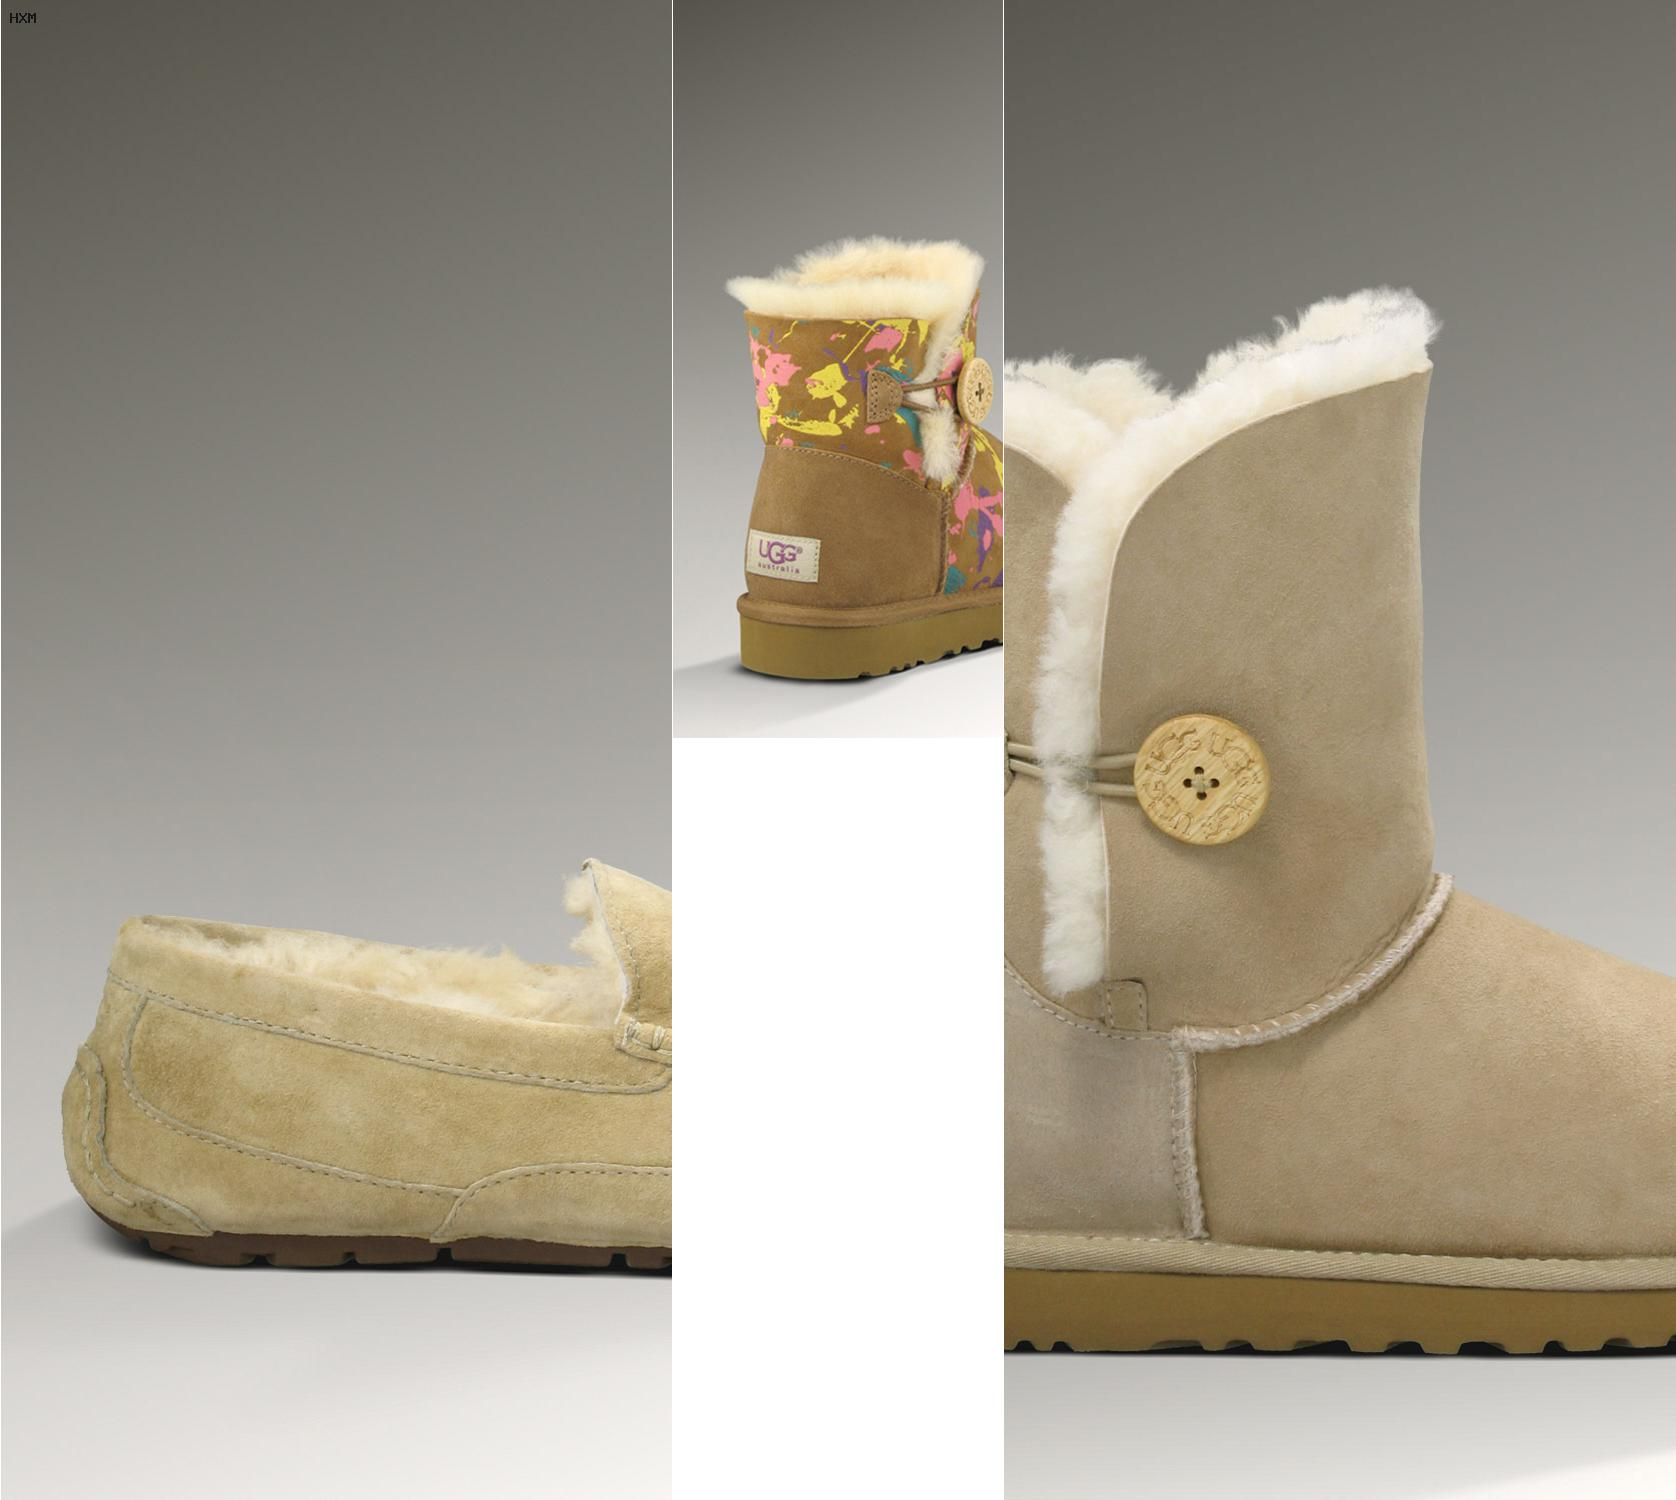 ugg outlet online mexico